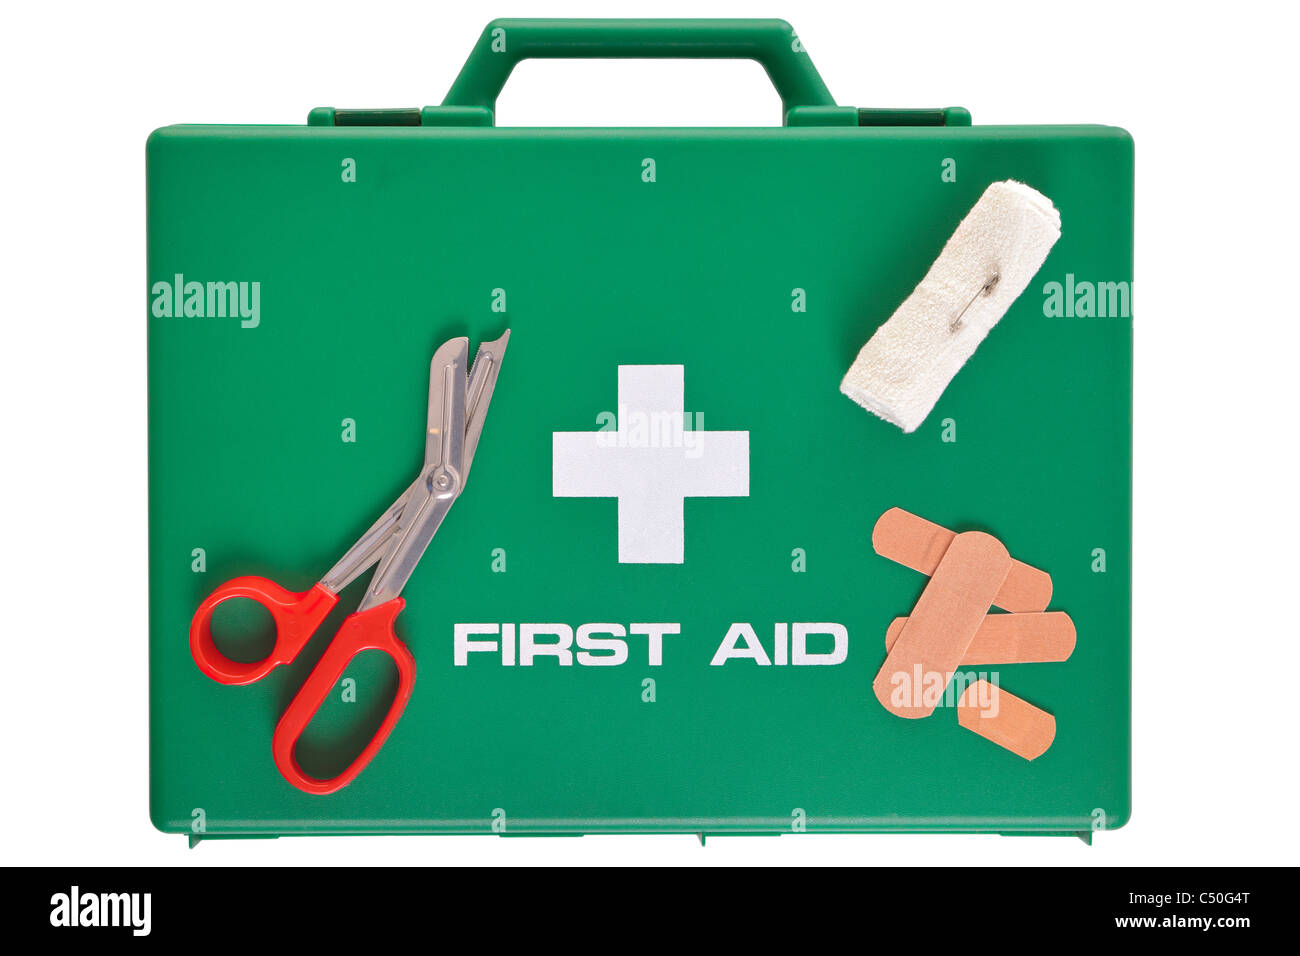 Photo of a first aid kit isolated on a white background with clipping path. - Stock Image